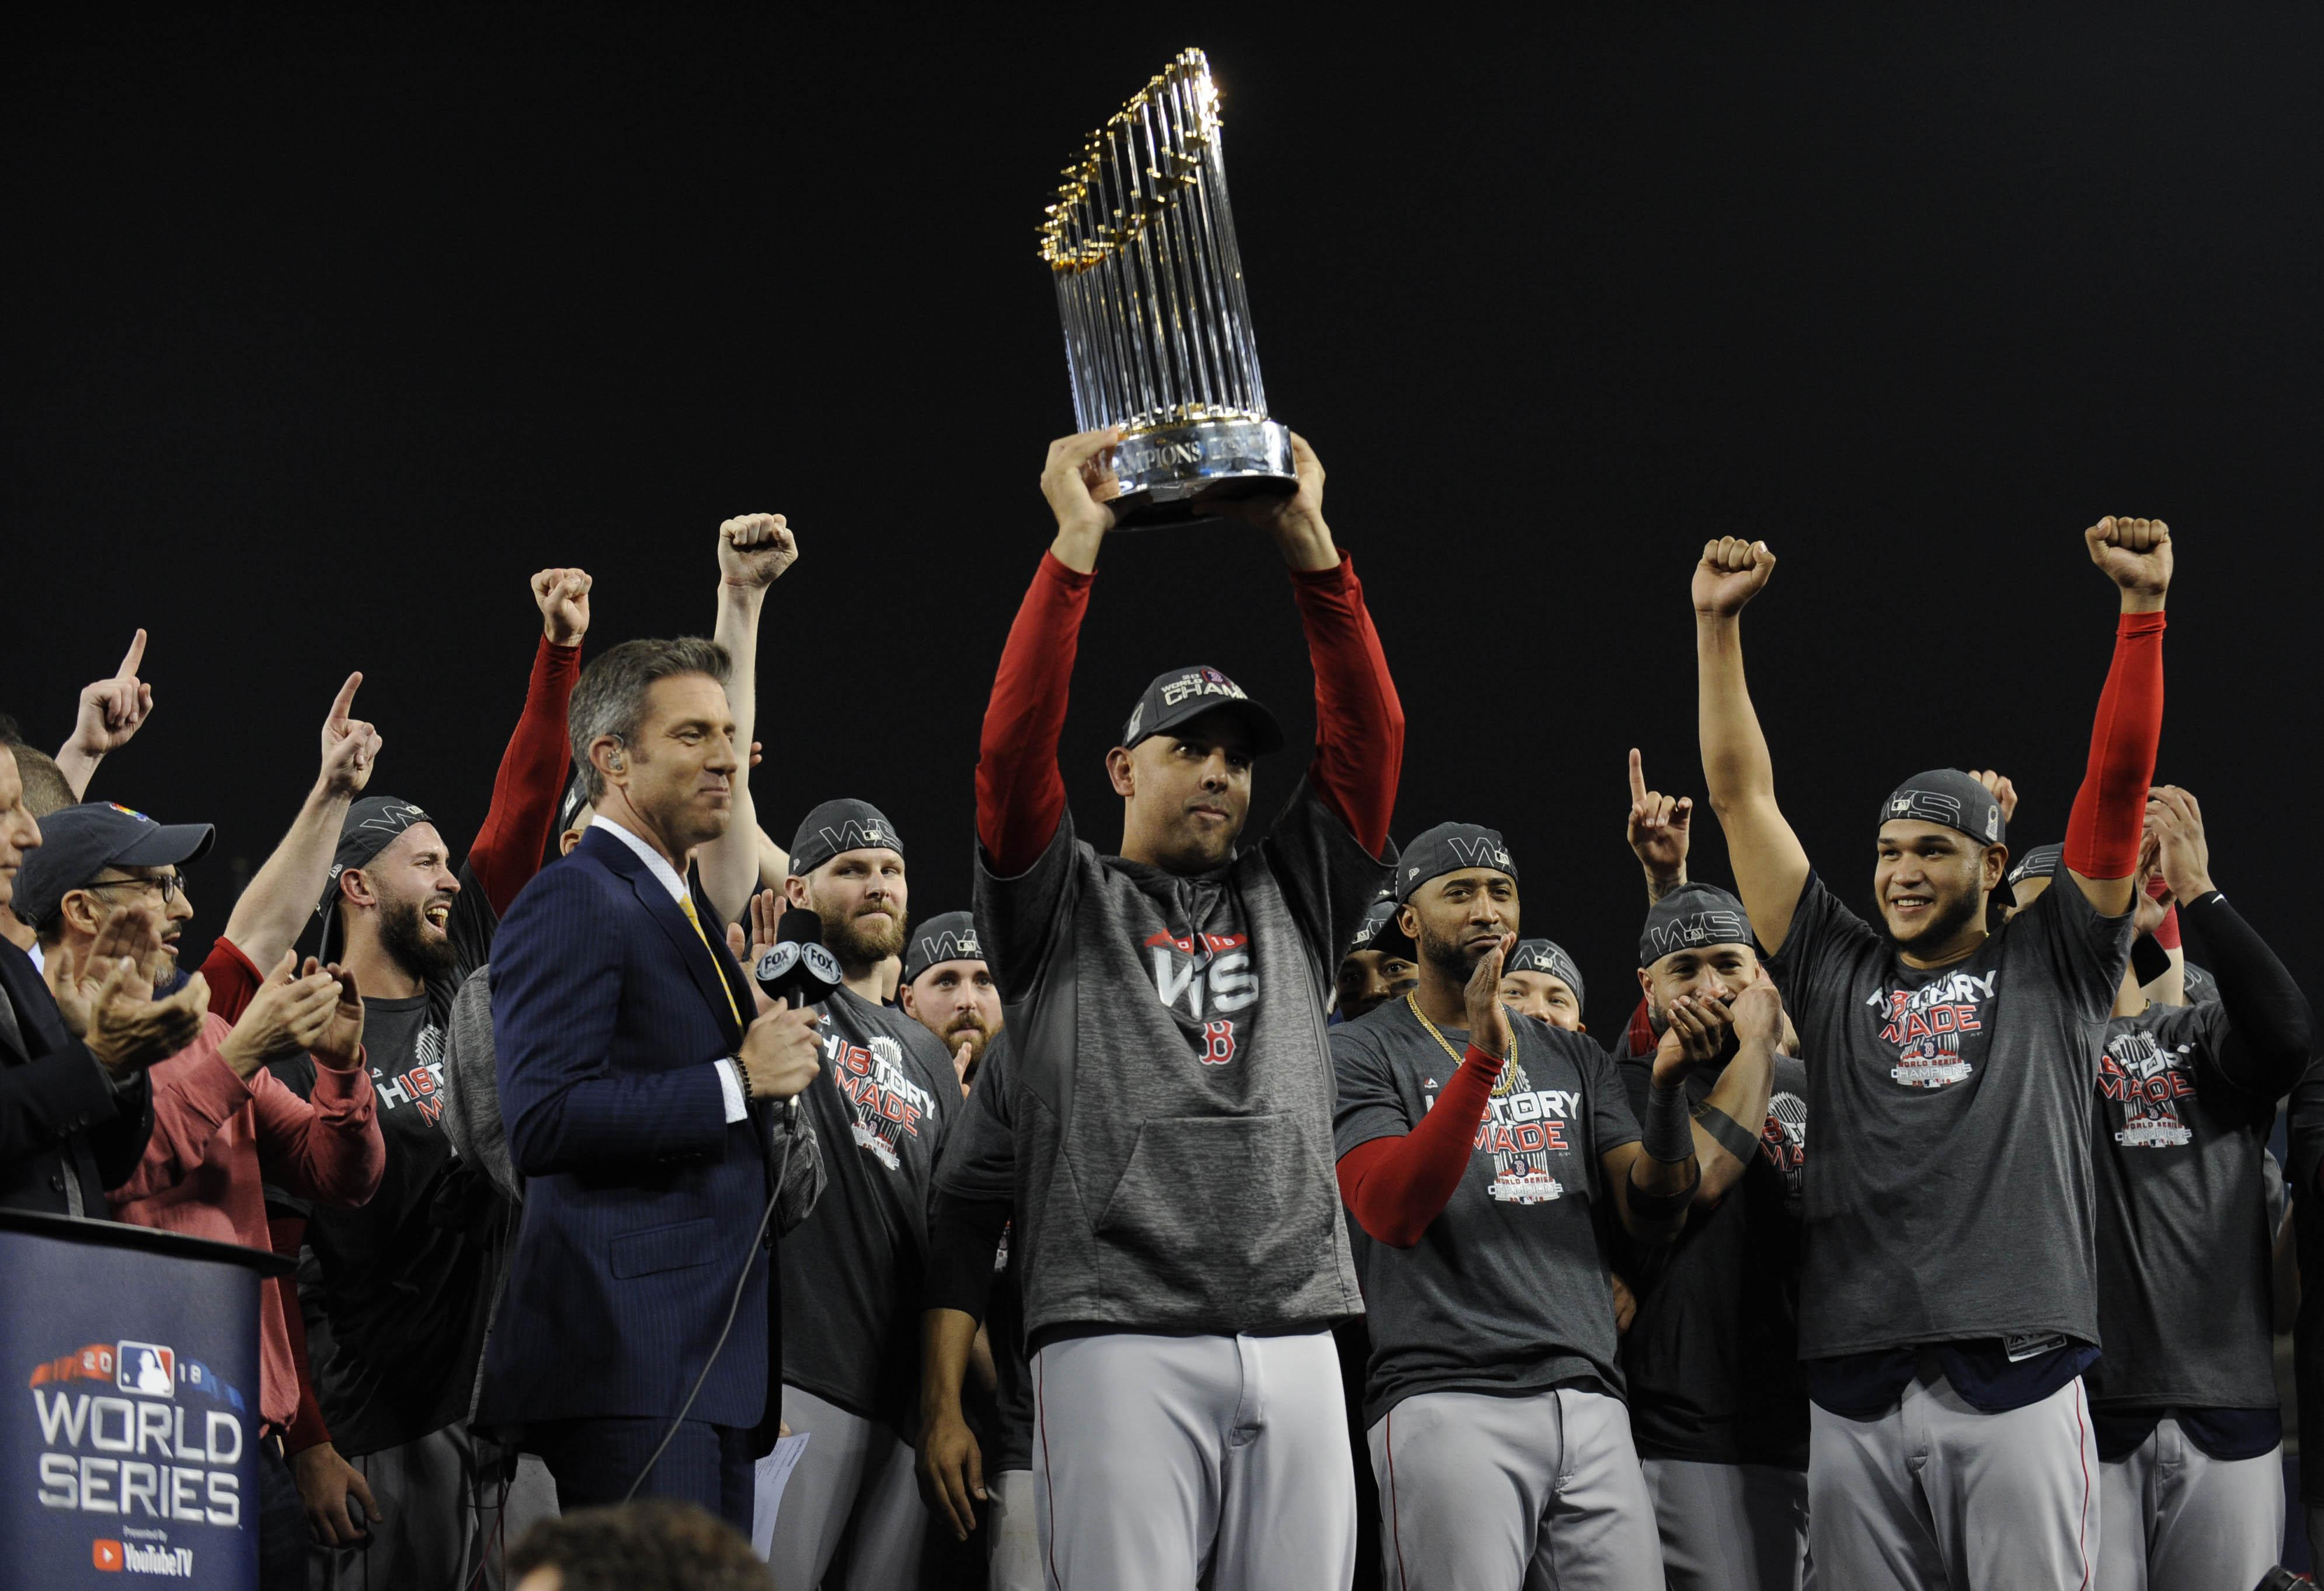 They defeated the Los Angeles Dodgers in game five of the 2018 World Series at Dodger Stadium